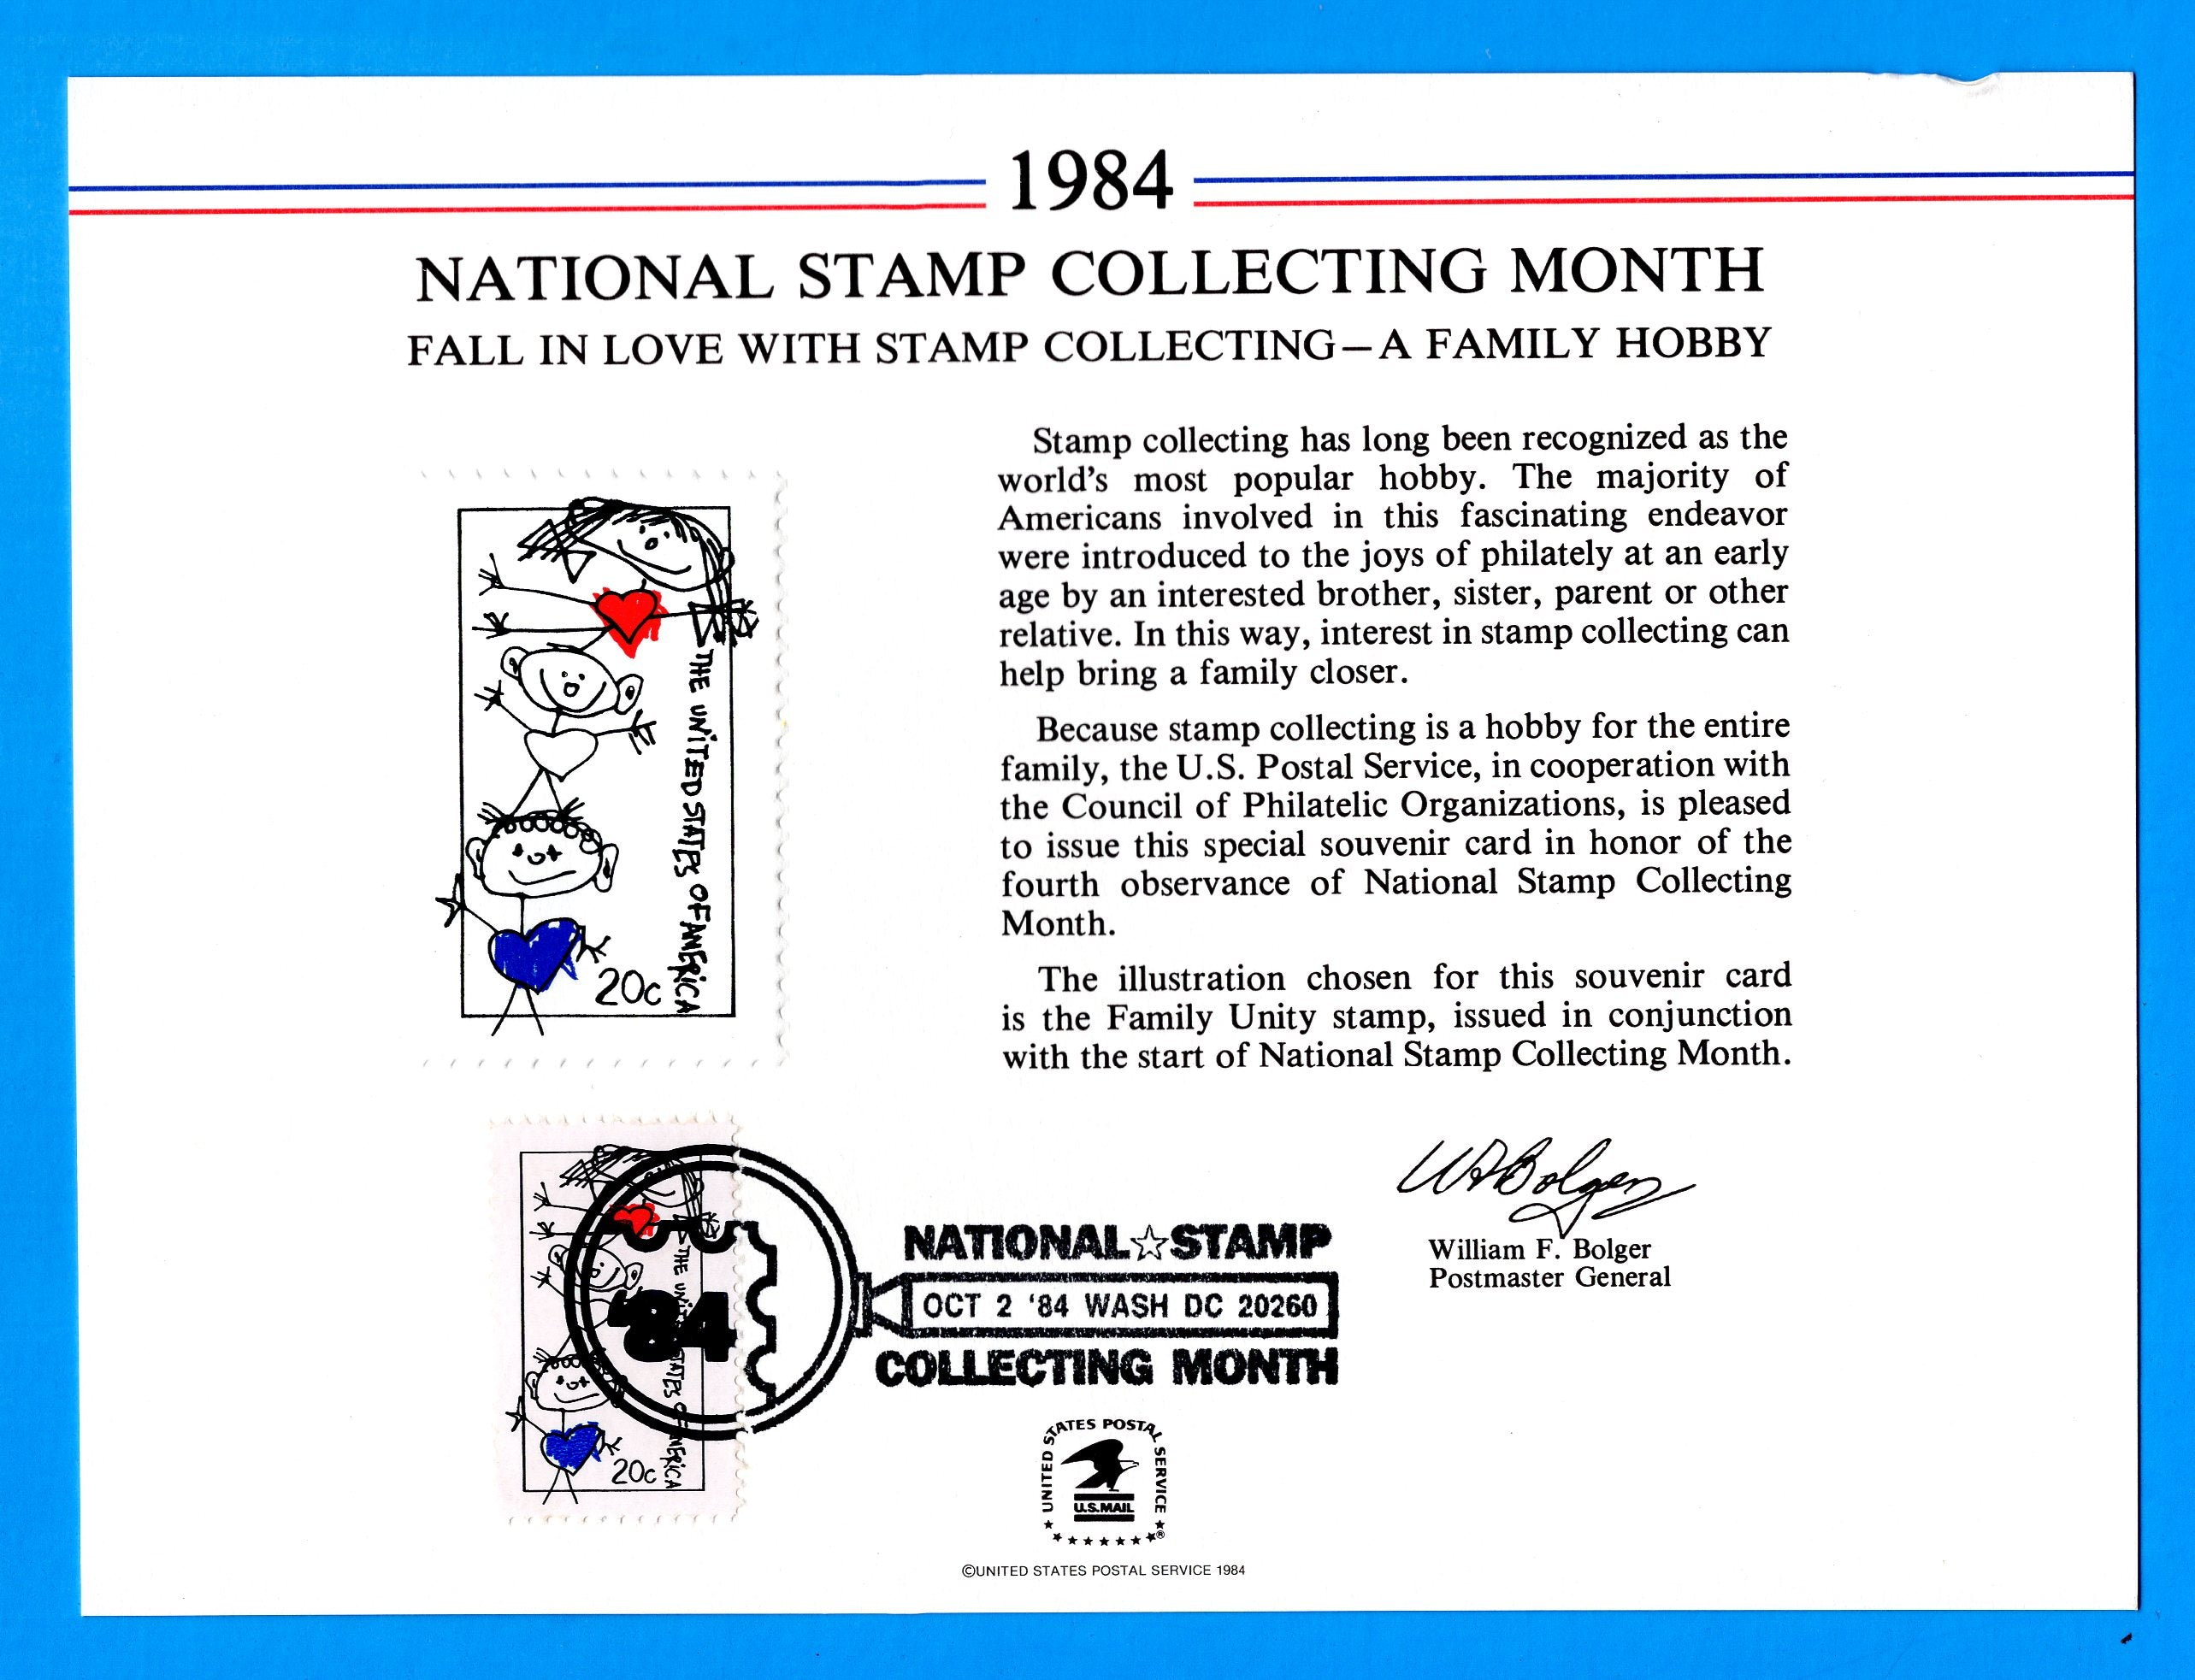 National Stamp Collecting Month, A Family Hobby, 1984 Souvenir Card Cancelled October 2, 1984